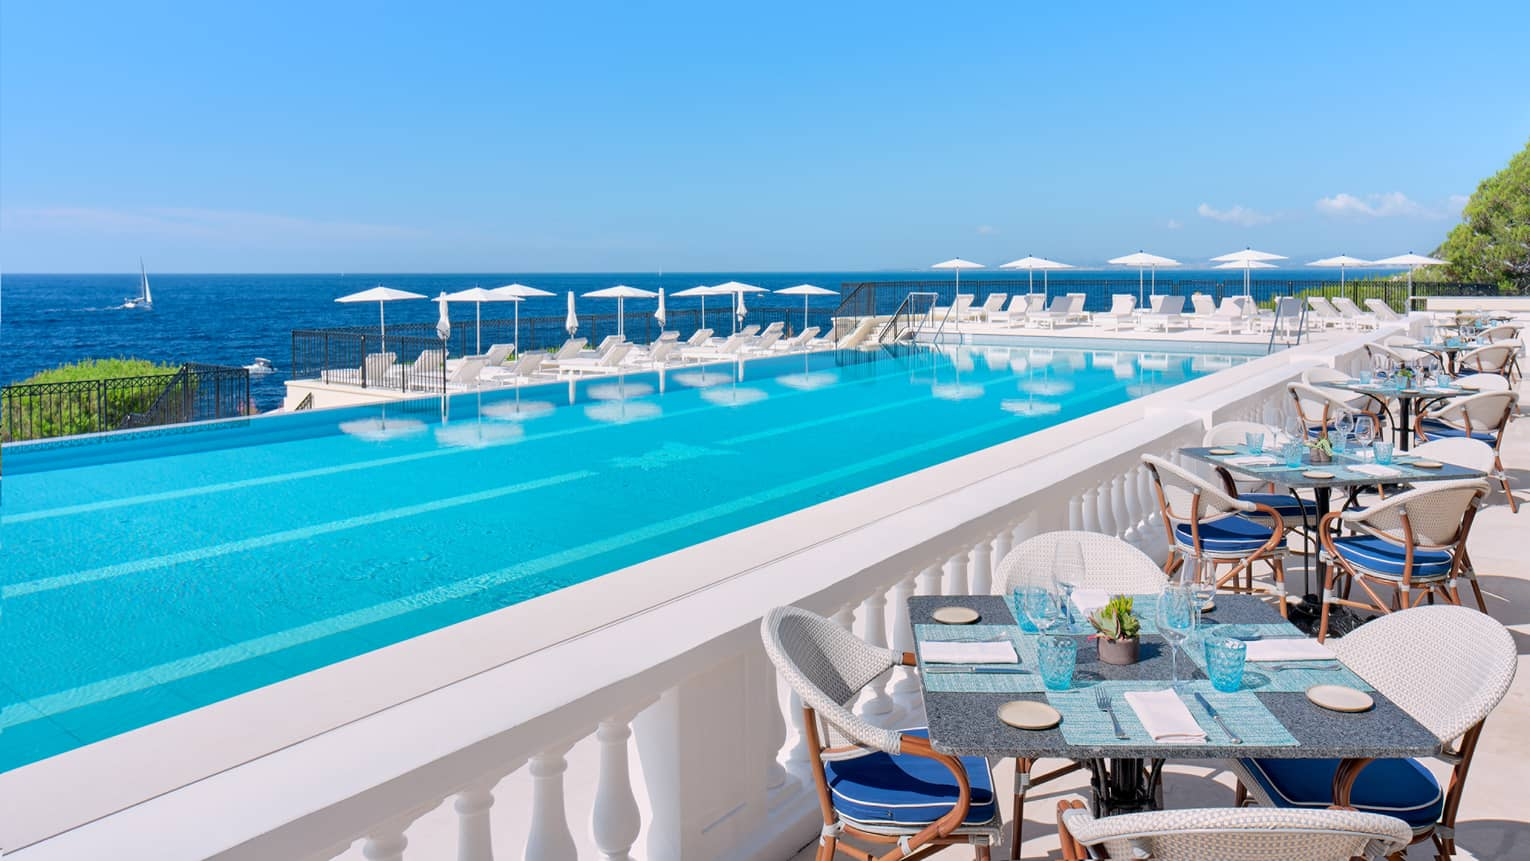 Mediterranean seafront infinity pool surrounded by white tables, lounge chairs, and umbrellas